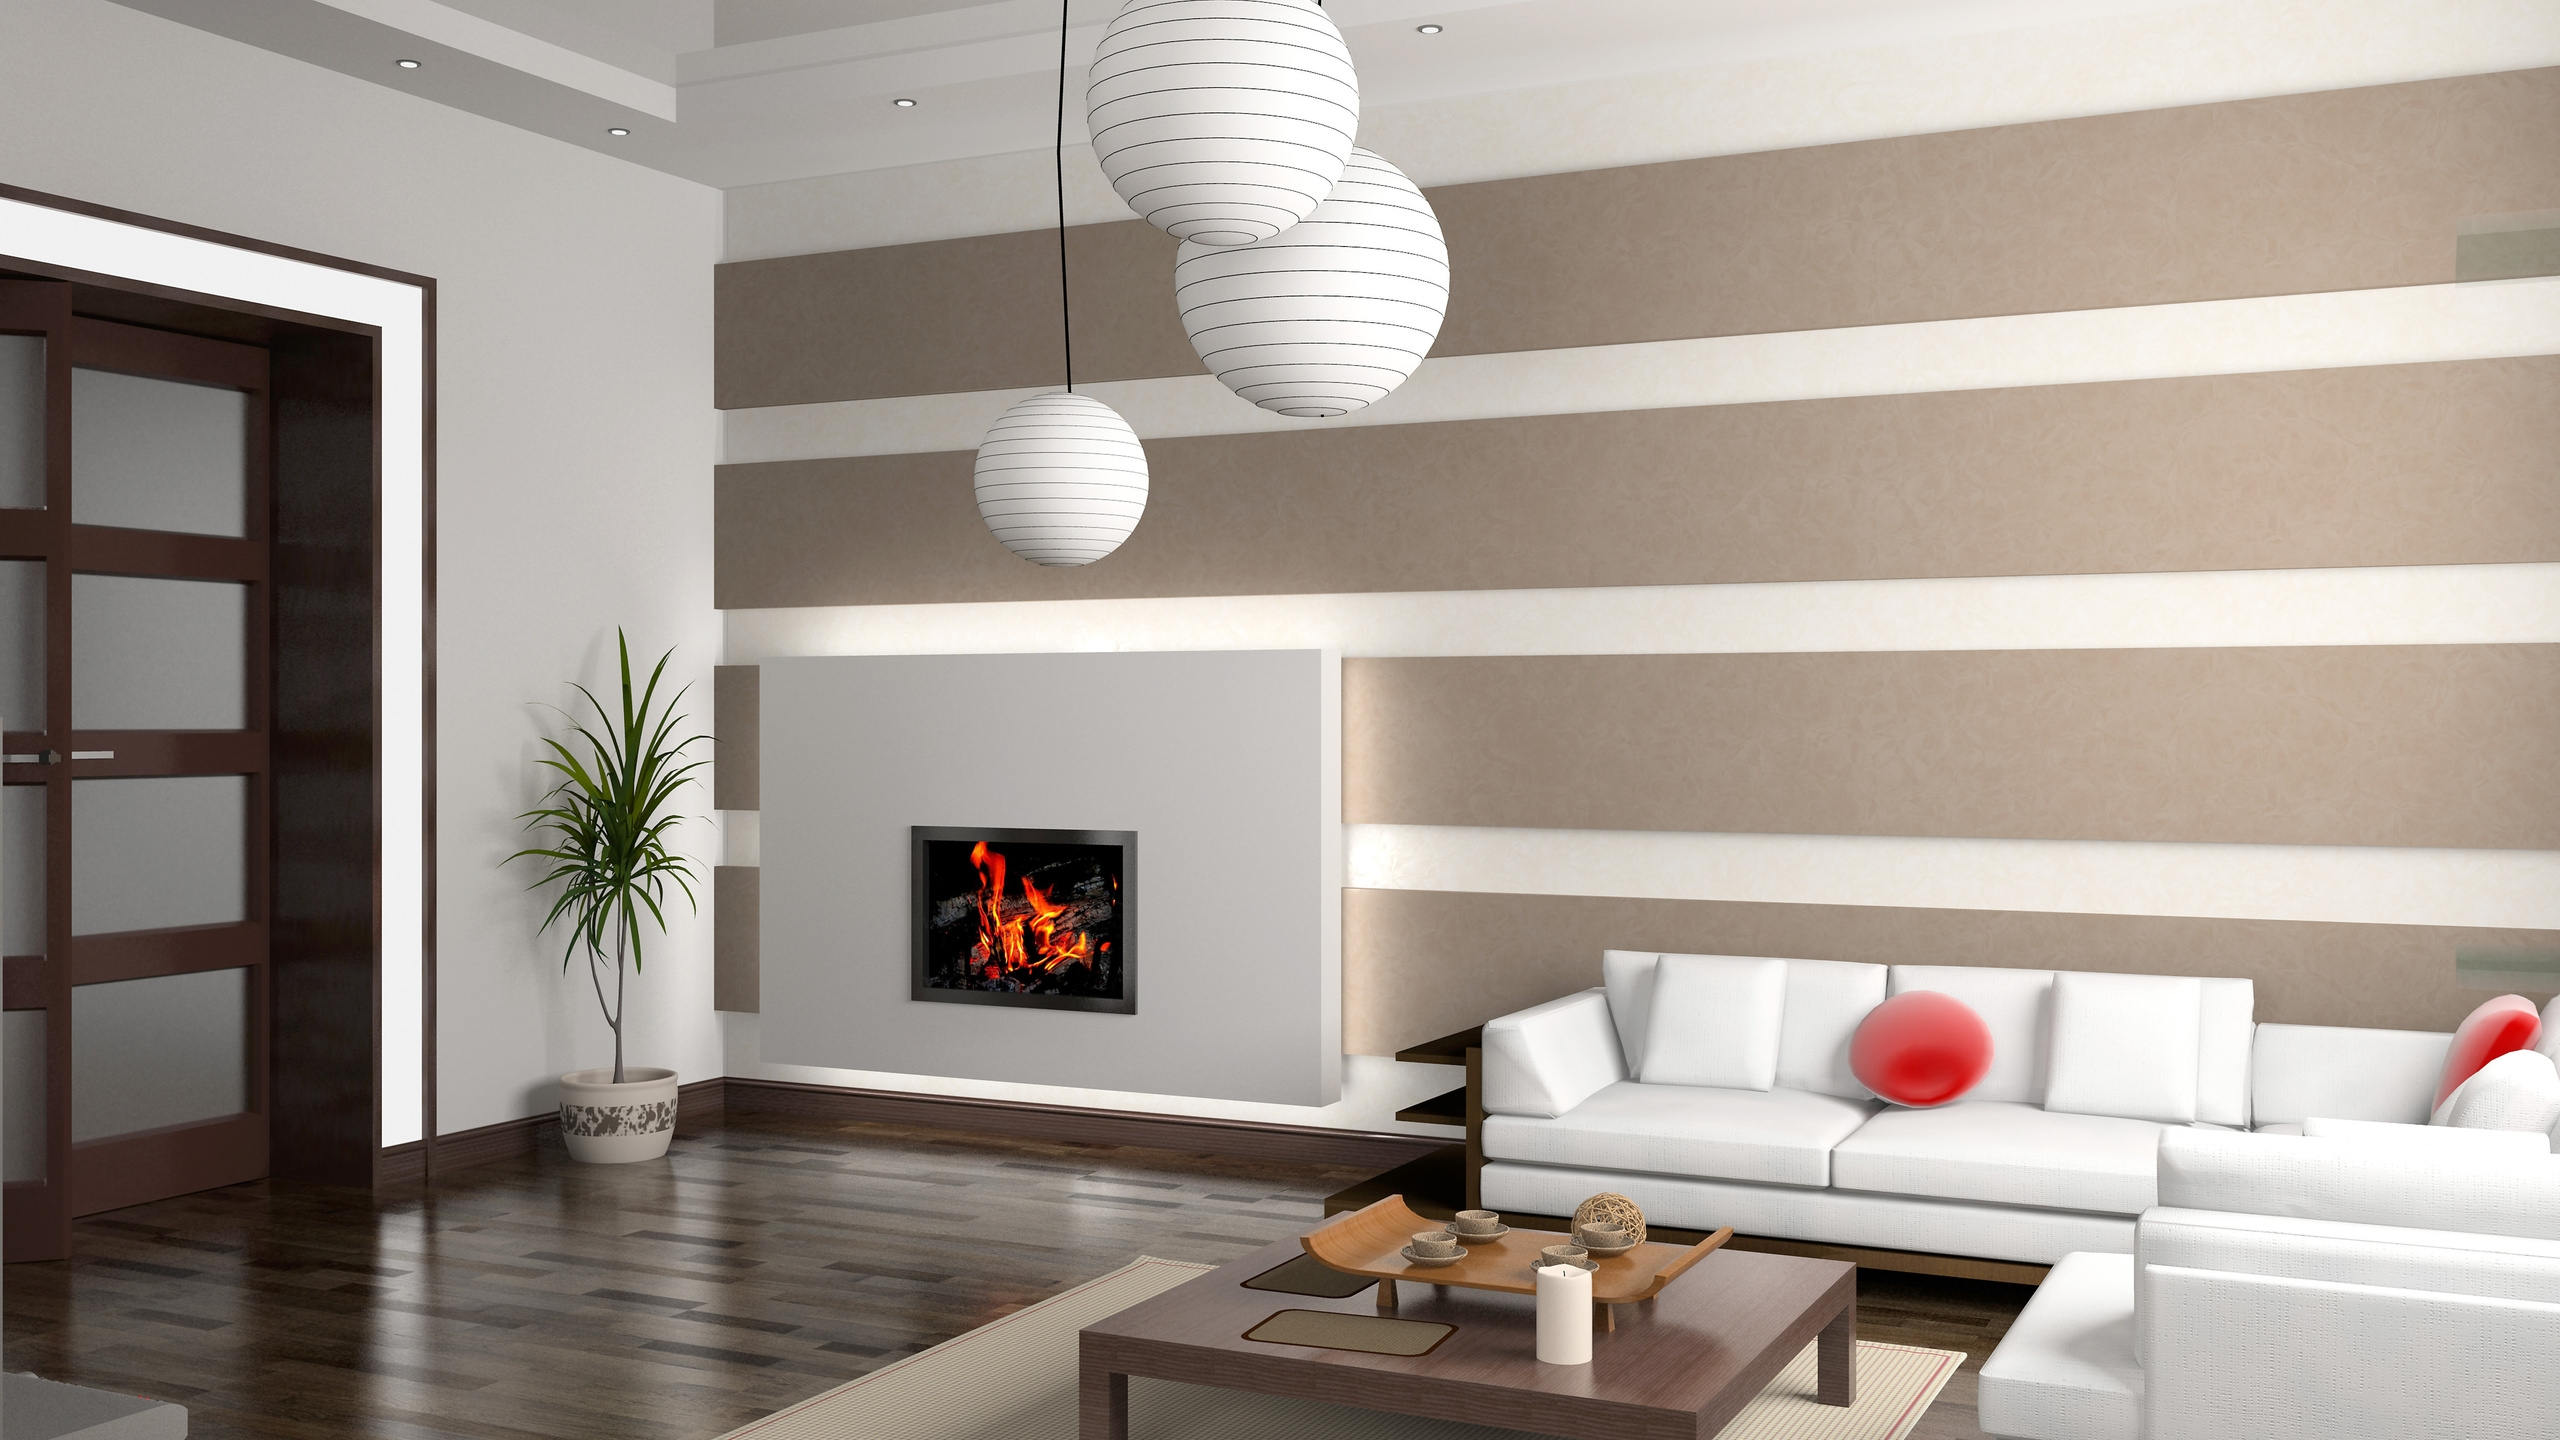 Awesome modern interior living room design ideas with balck .